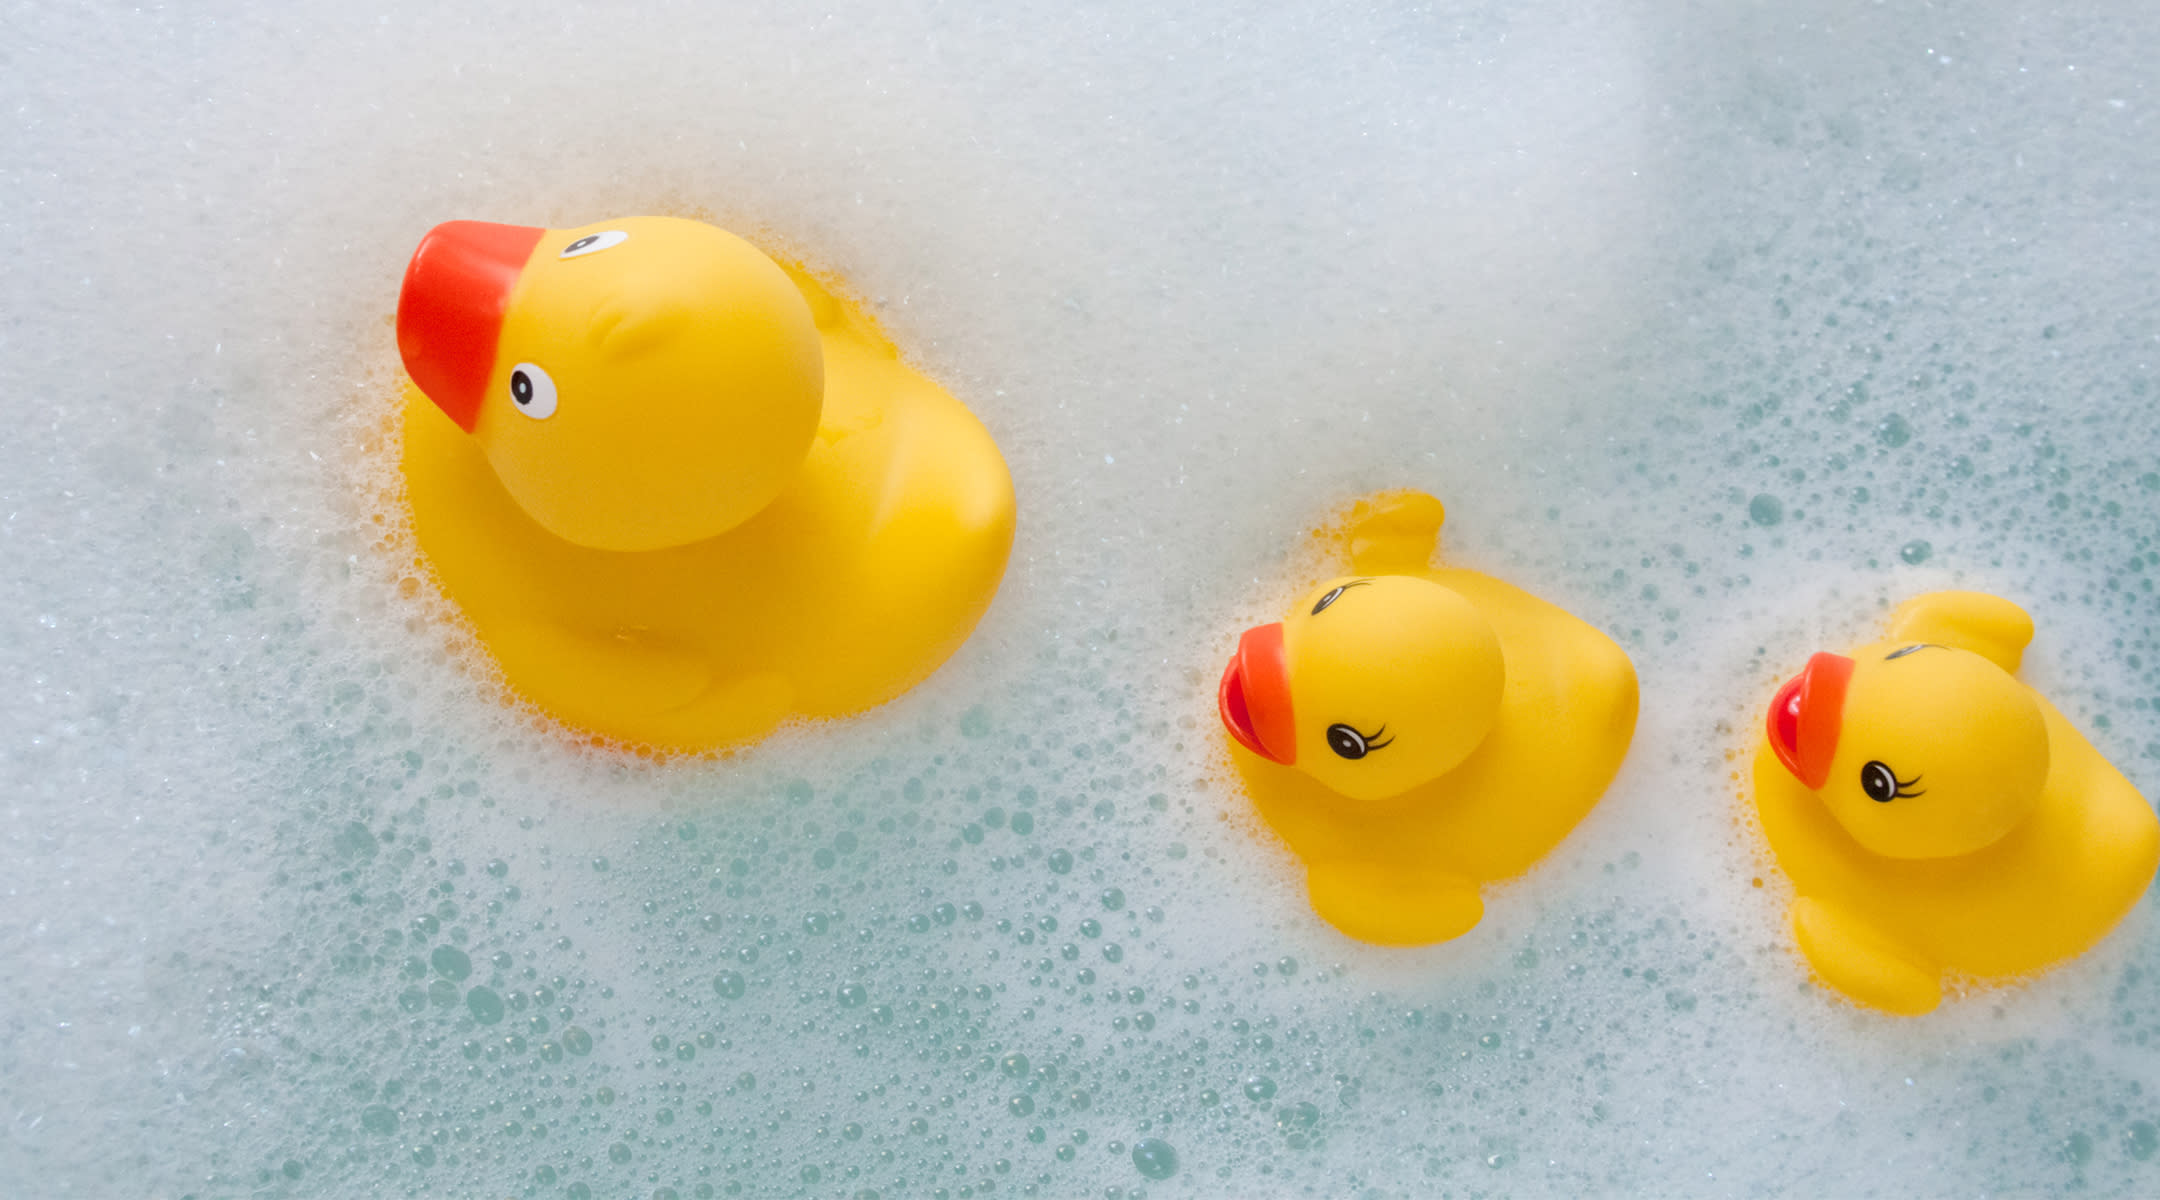 Mold Inside Rubber Duckie Captured In